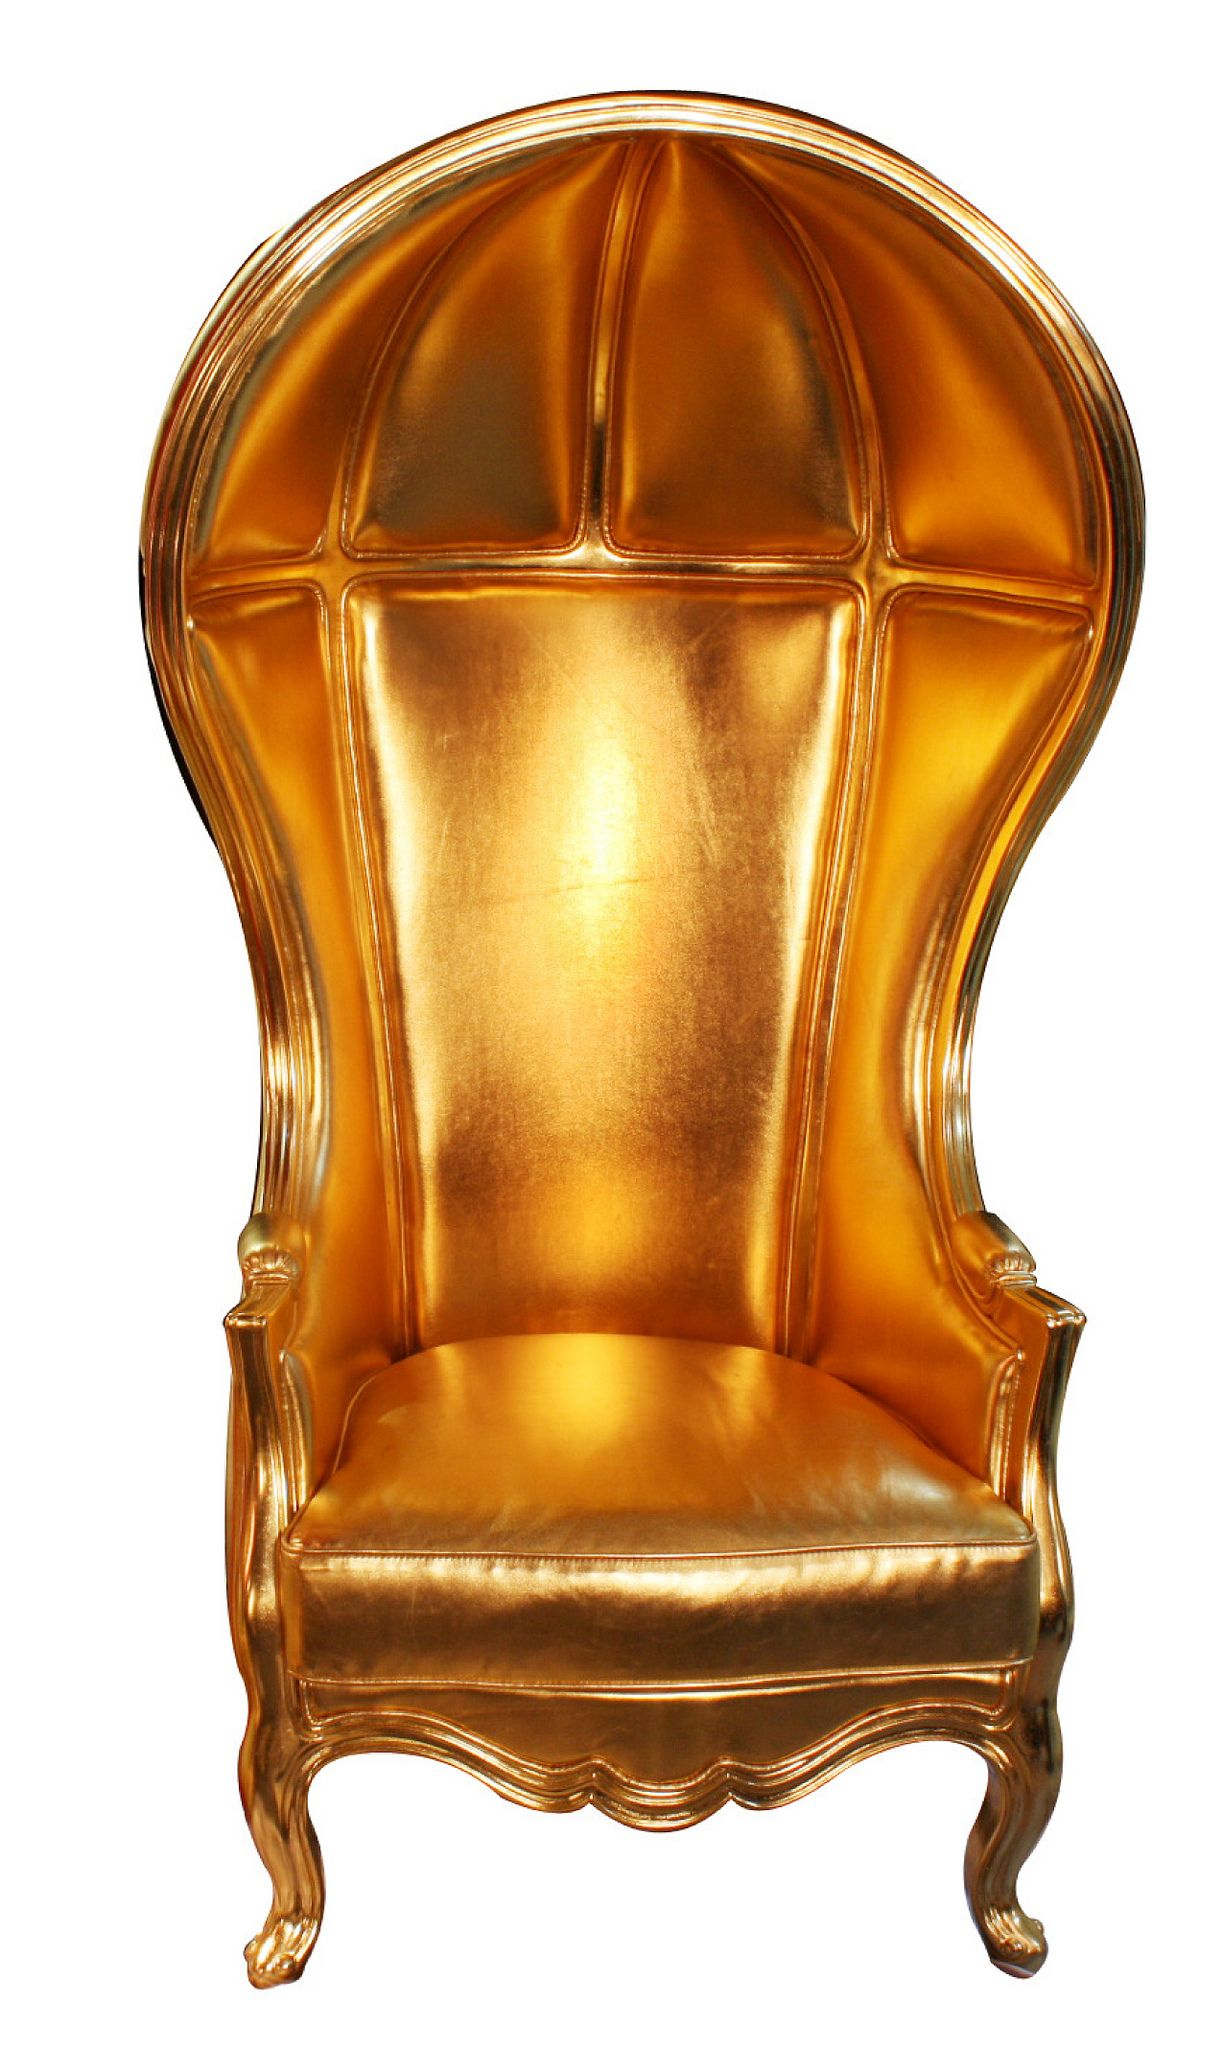 Https://flic.kr/p/bMpVYi | 8013 GOLD BALLOON CHAIR | Go Back In Time And  Sit On A Modern Throne. This Classic Philippe Starck Style Neo Baroque Chair  Exudes ...